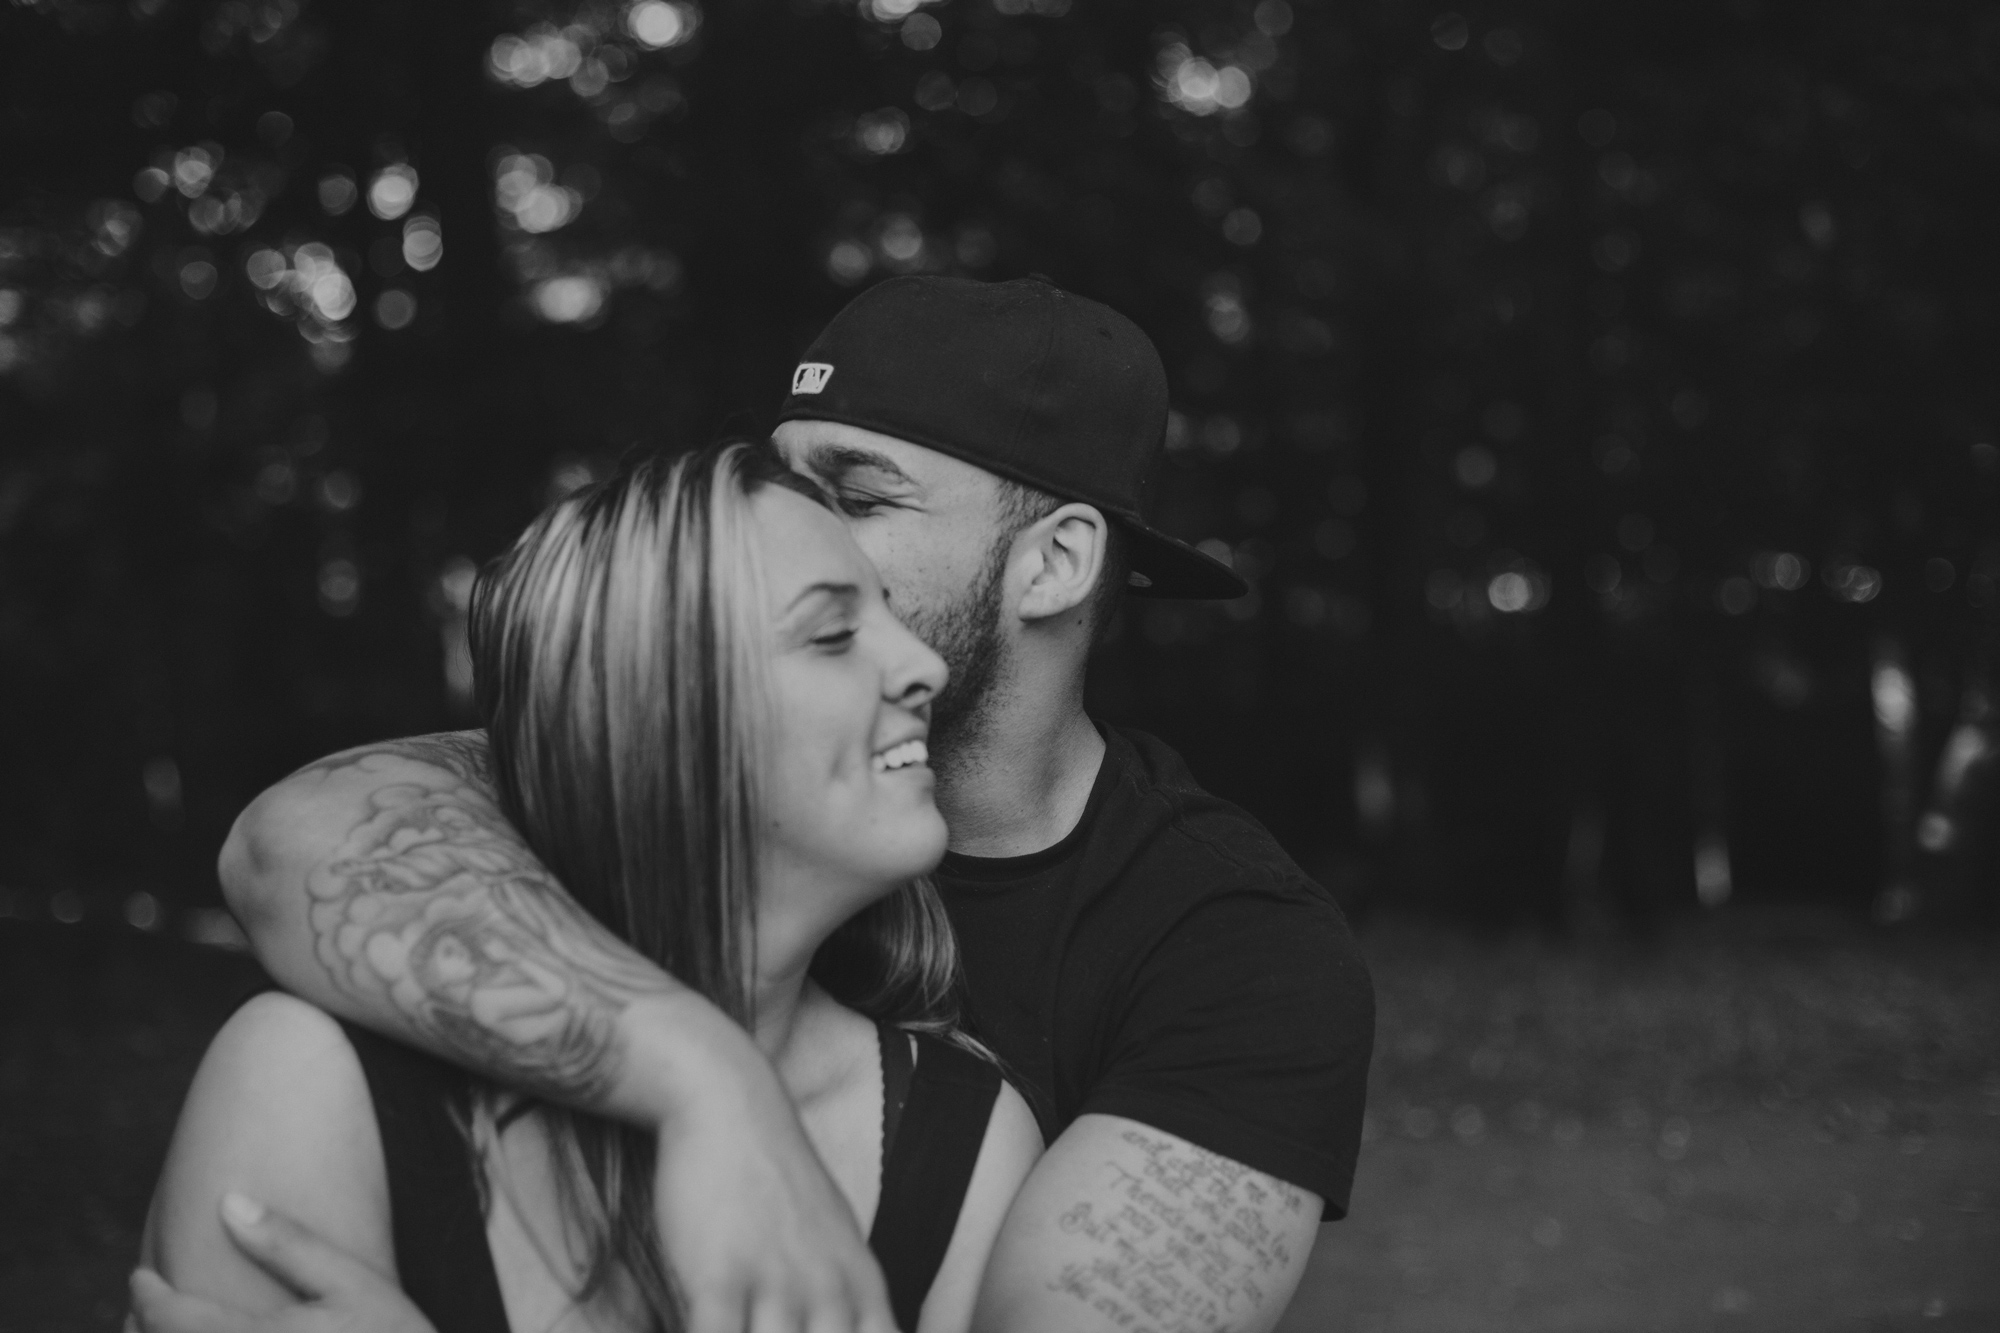 Outdoor engagement-style couples photography at Ellison Park in Rochester, NY.